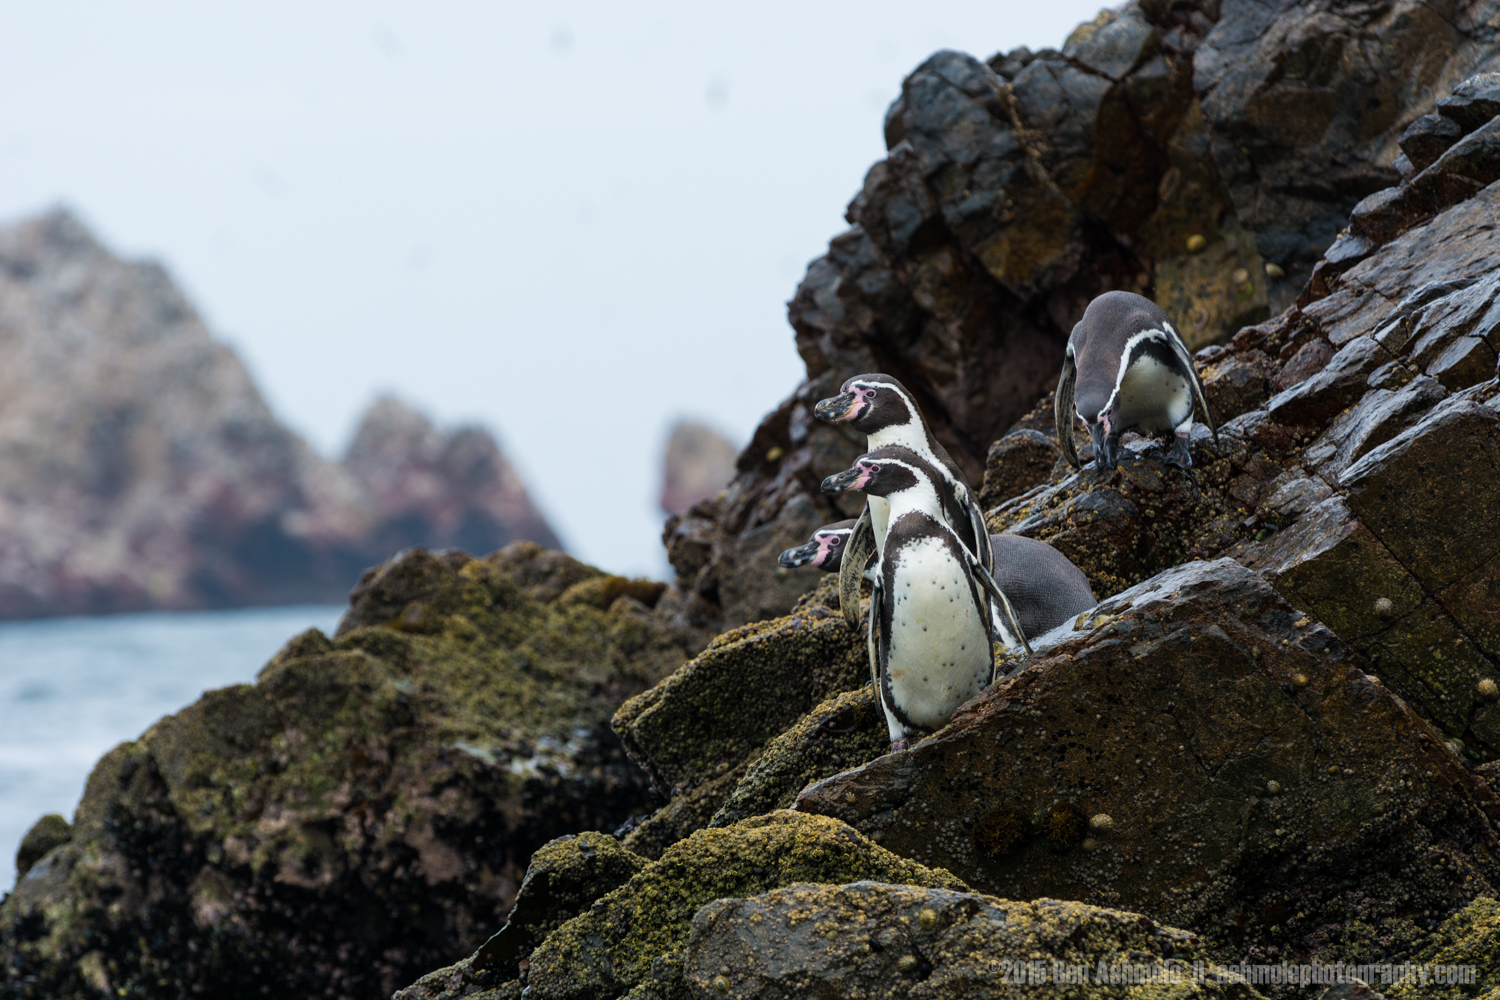 Inquisitive Penguins, Ballestas Islands, Peru